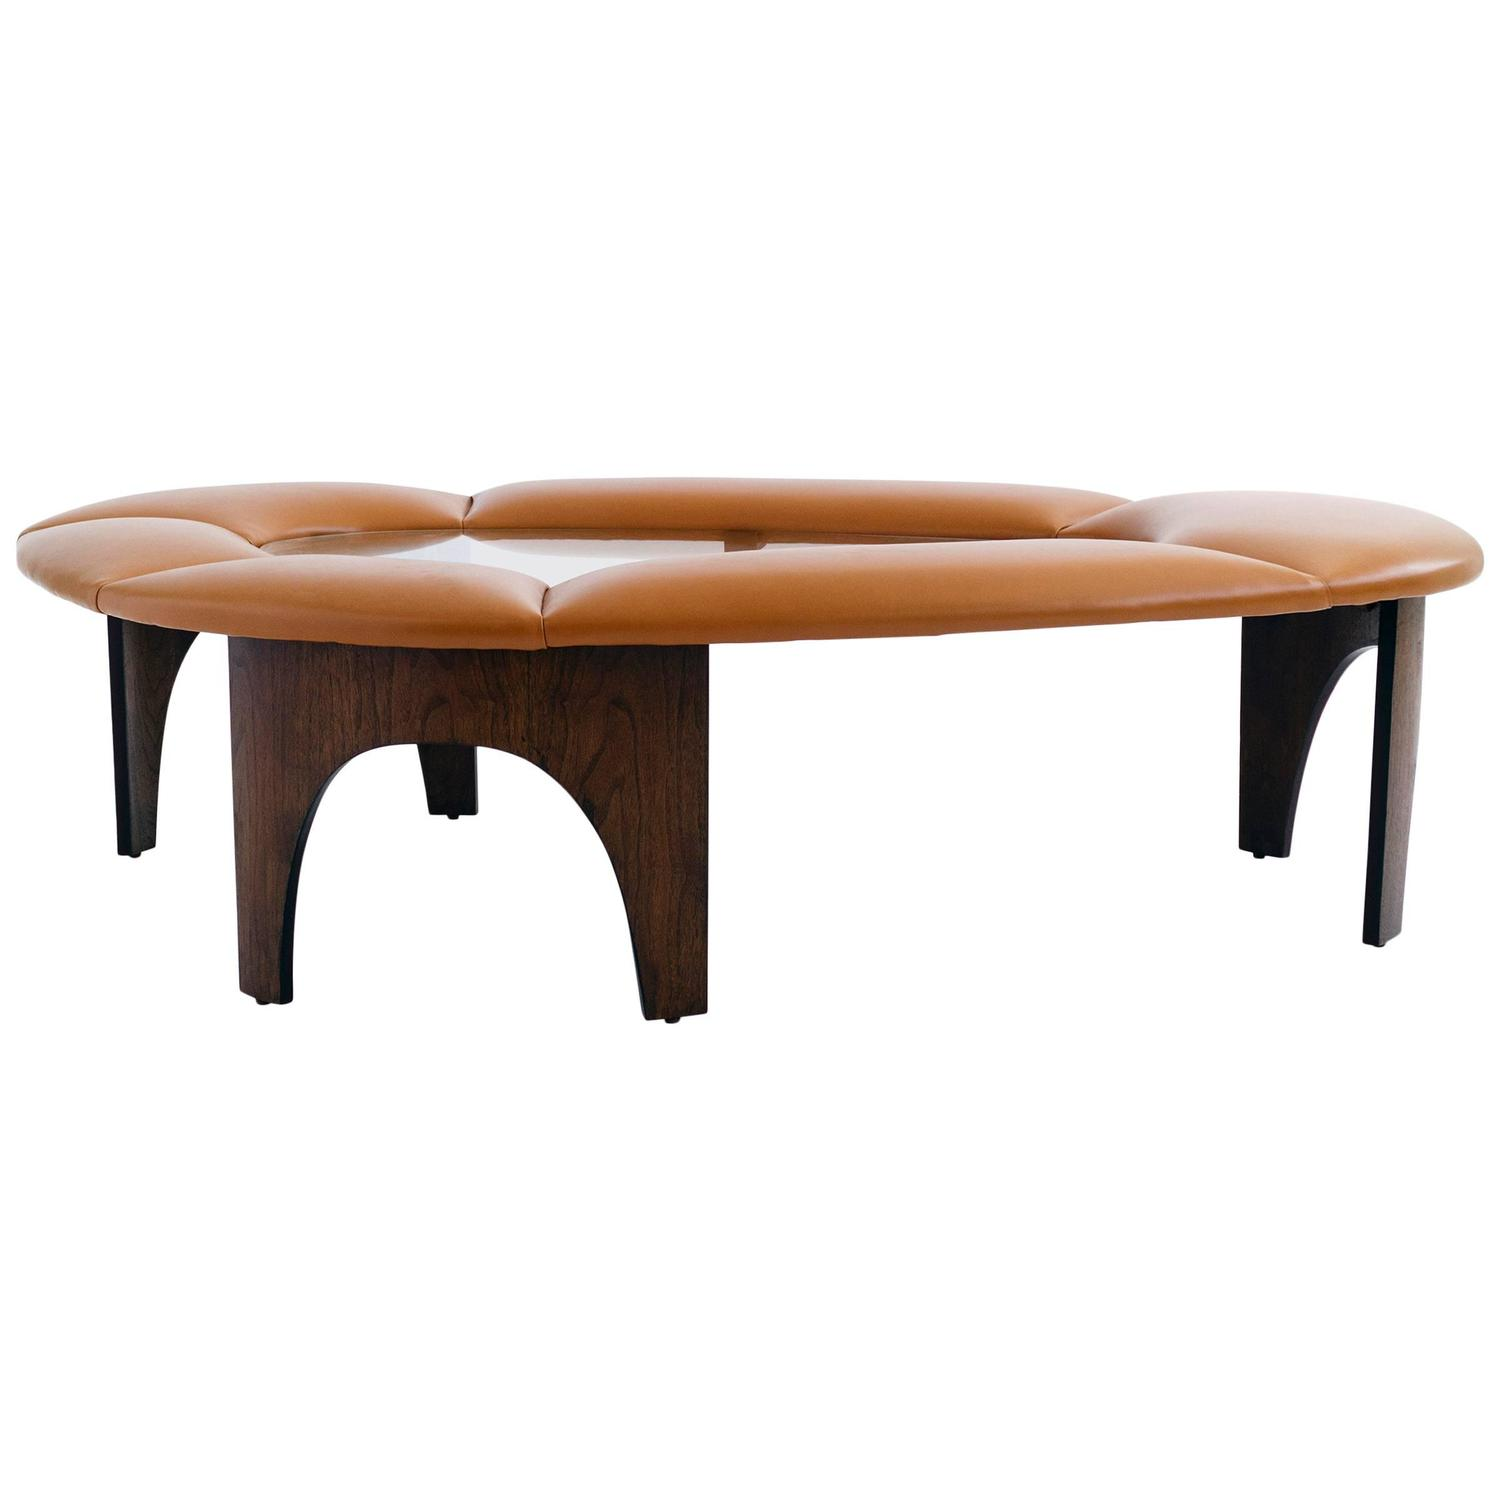 Padded Coffee Tables Large Scale Upholstered Coffee Table For Sale At 1stdibs Morton